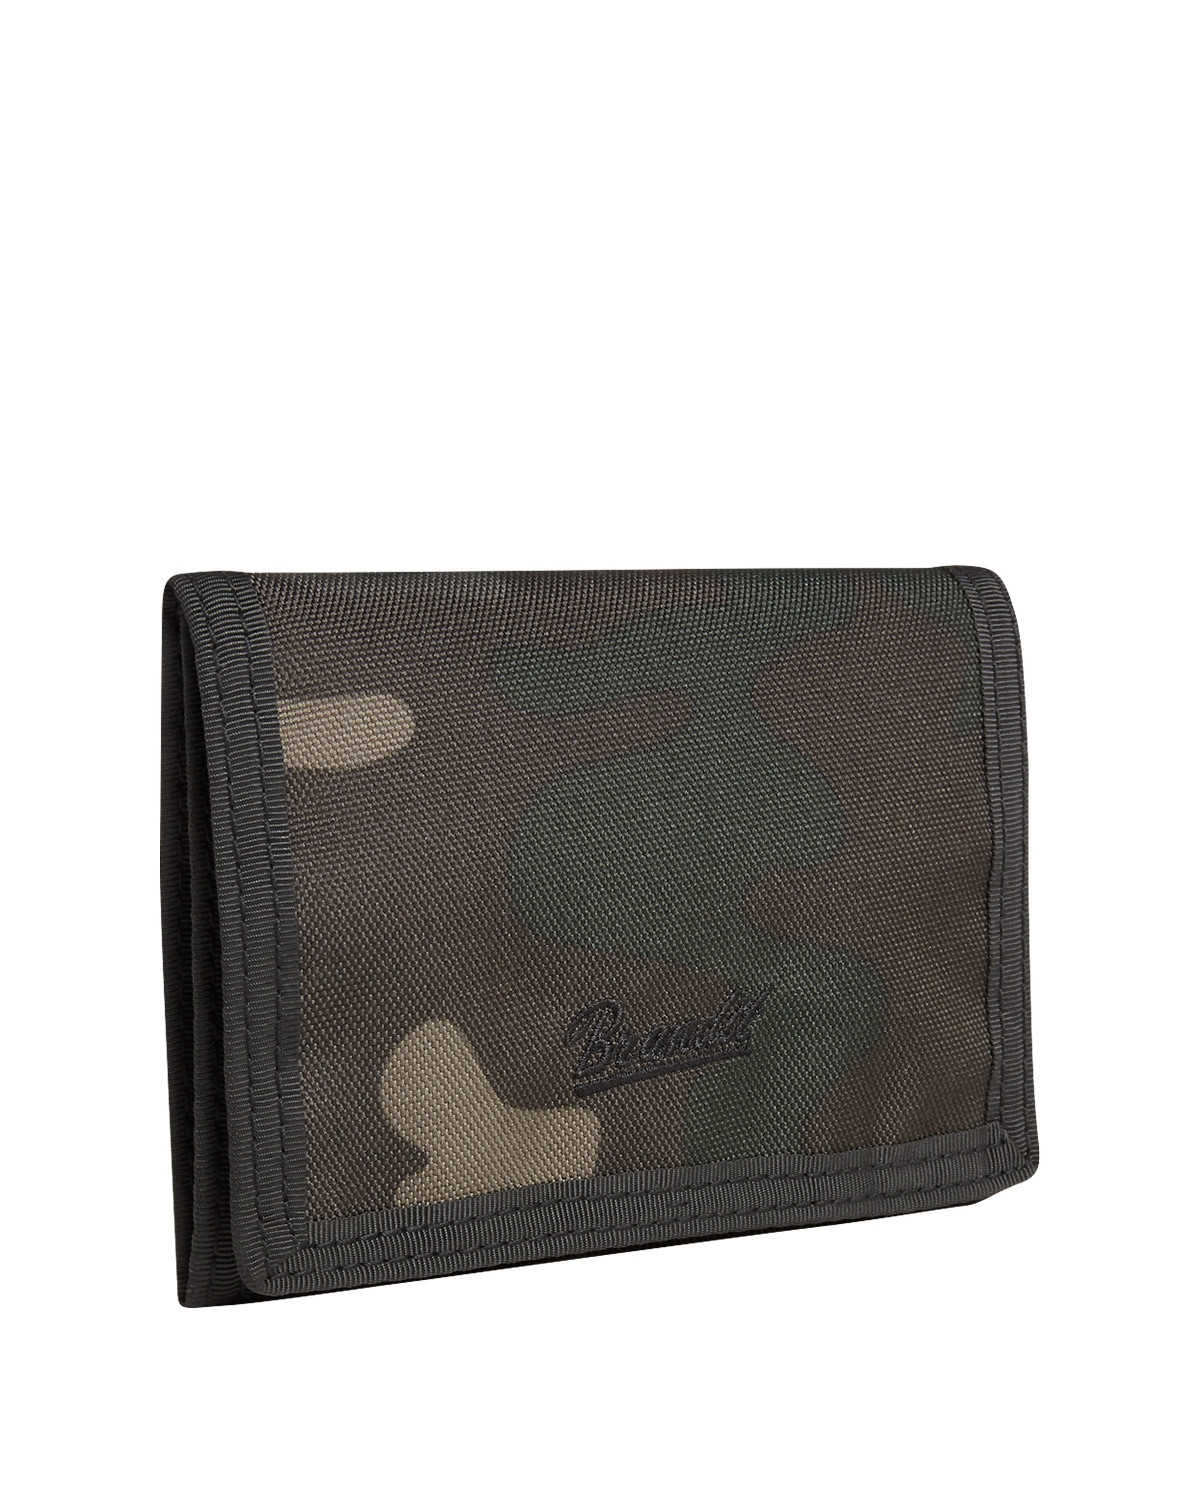 Image of   Brandit Wallet Three (Dark Camo, One Size)